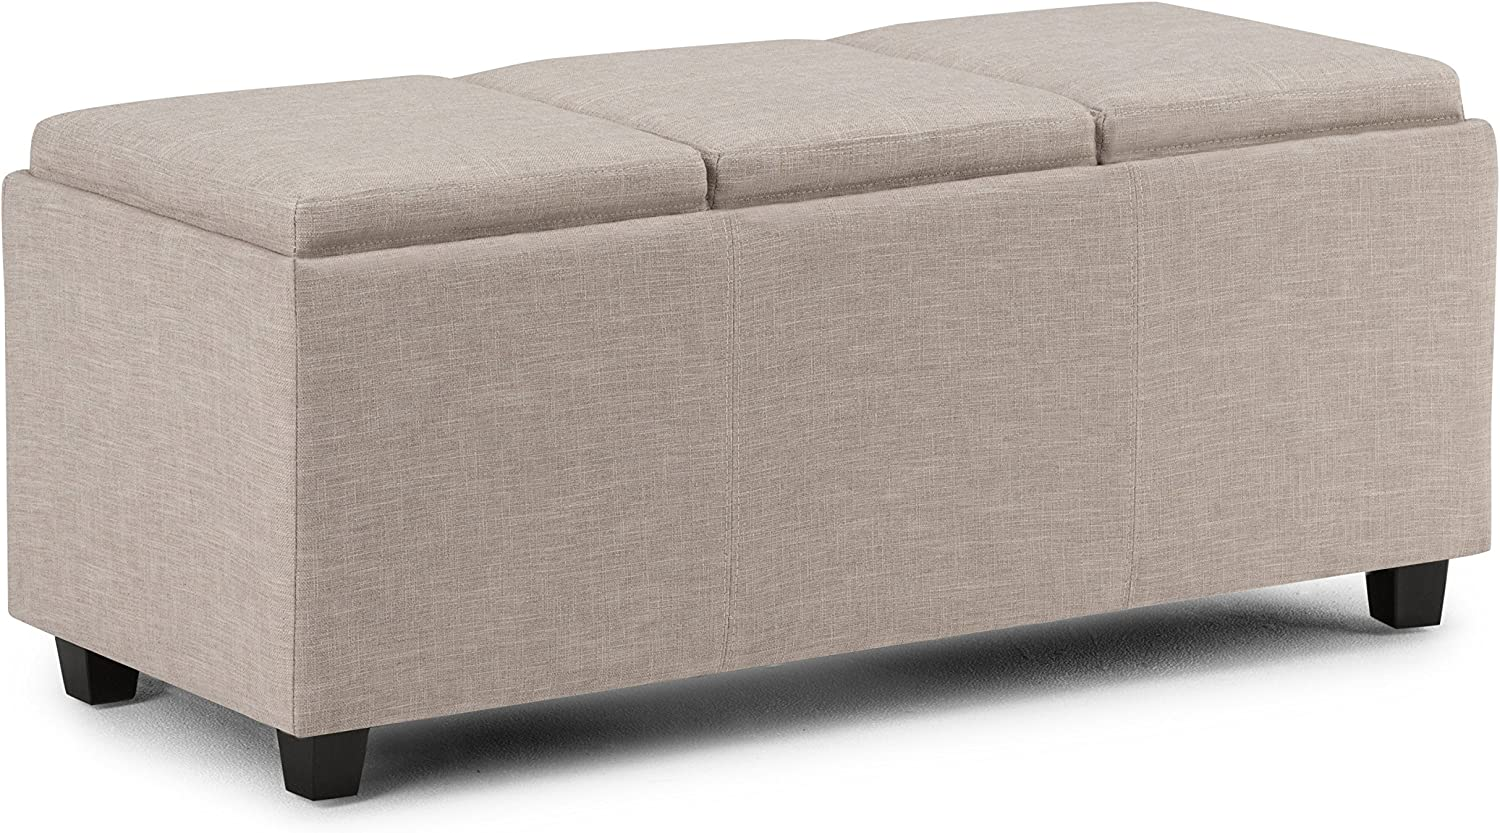 Simpli Home 3AXCAVA-OTTBNCH-02-NL Avalon 42 inch Wide ContemporaryStorage Ottoman in Natural Linen Look Fabric